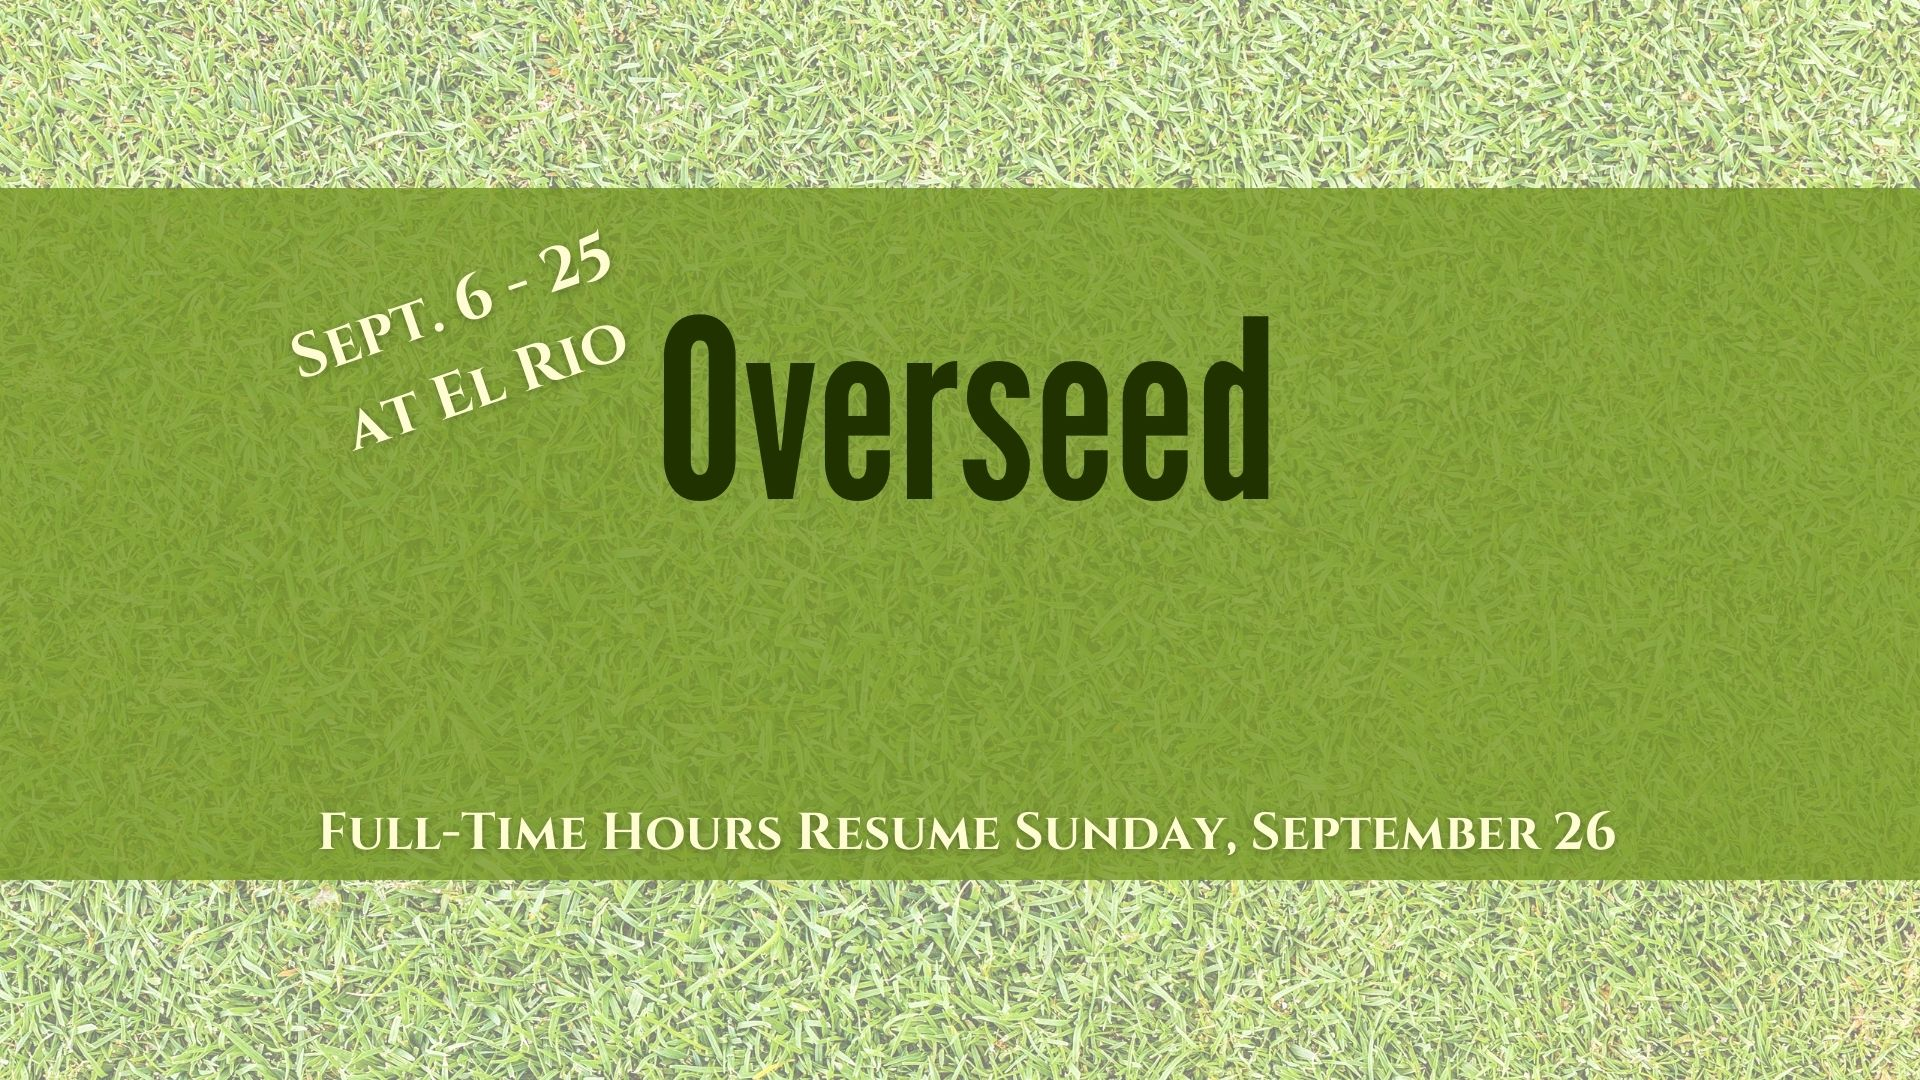 Course Closed Sept. 6 – 25